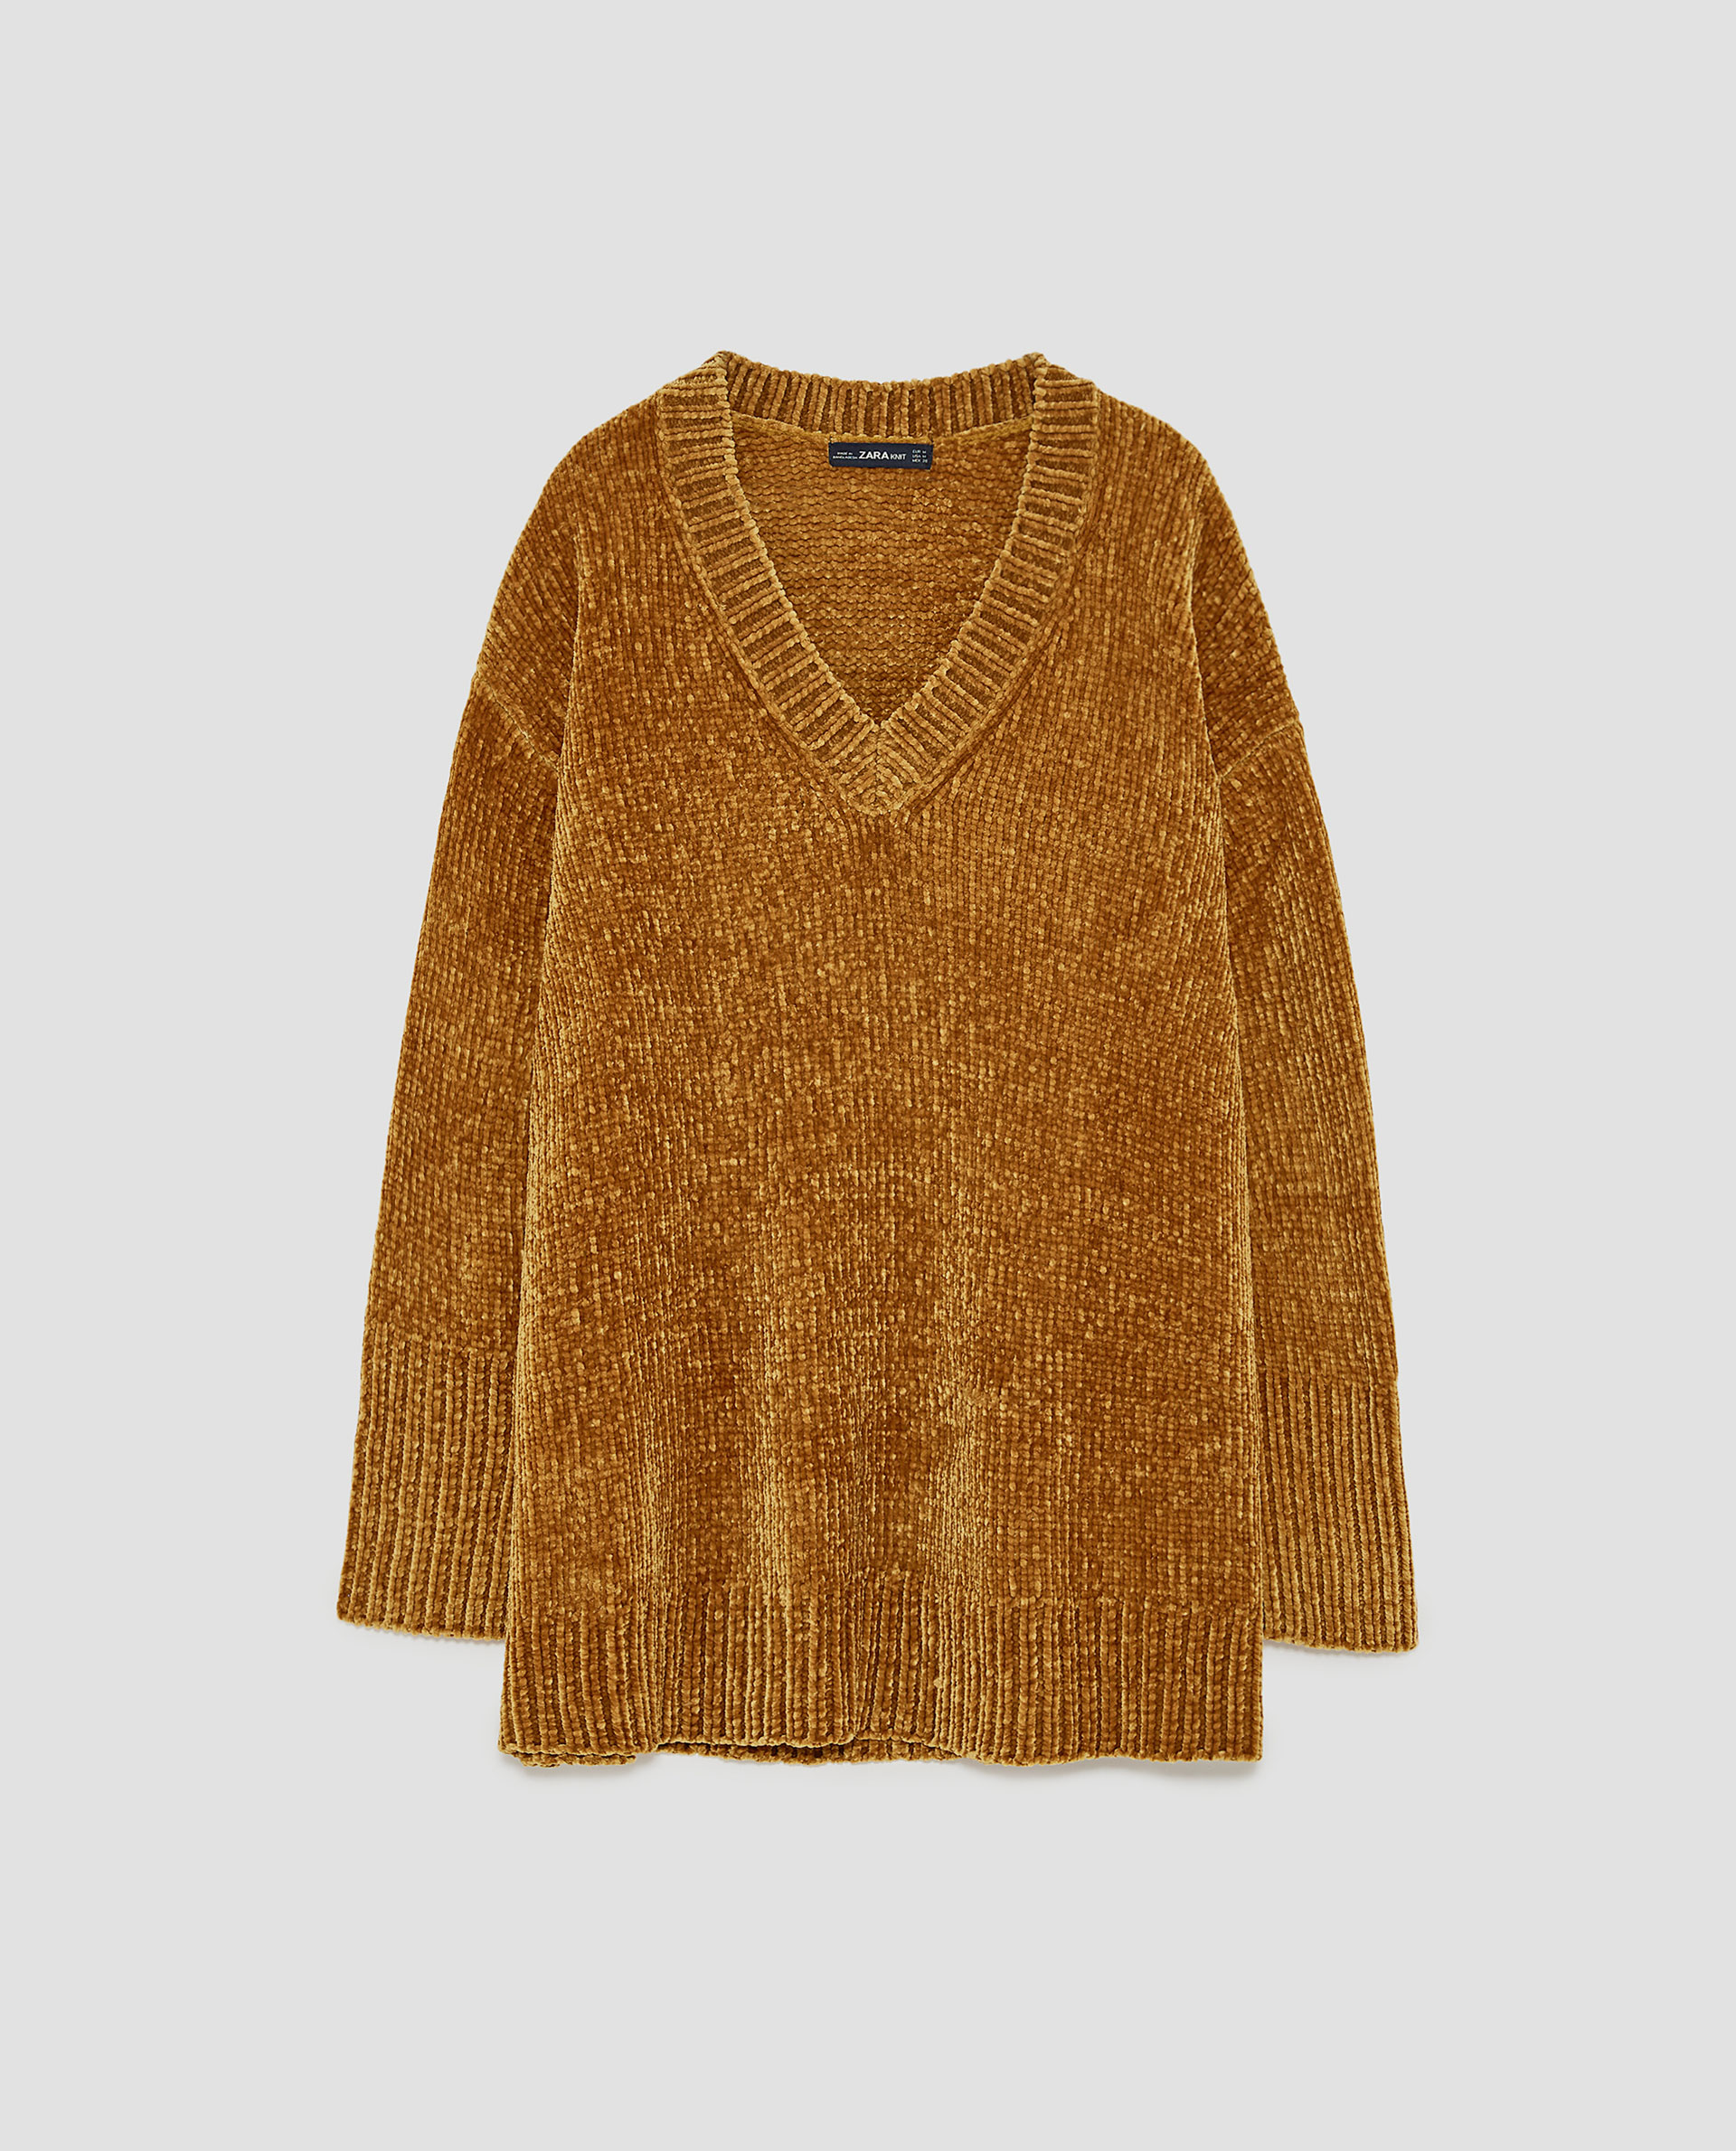 OVERSIZED CHENILLE SWEATER - 49.90 CAD